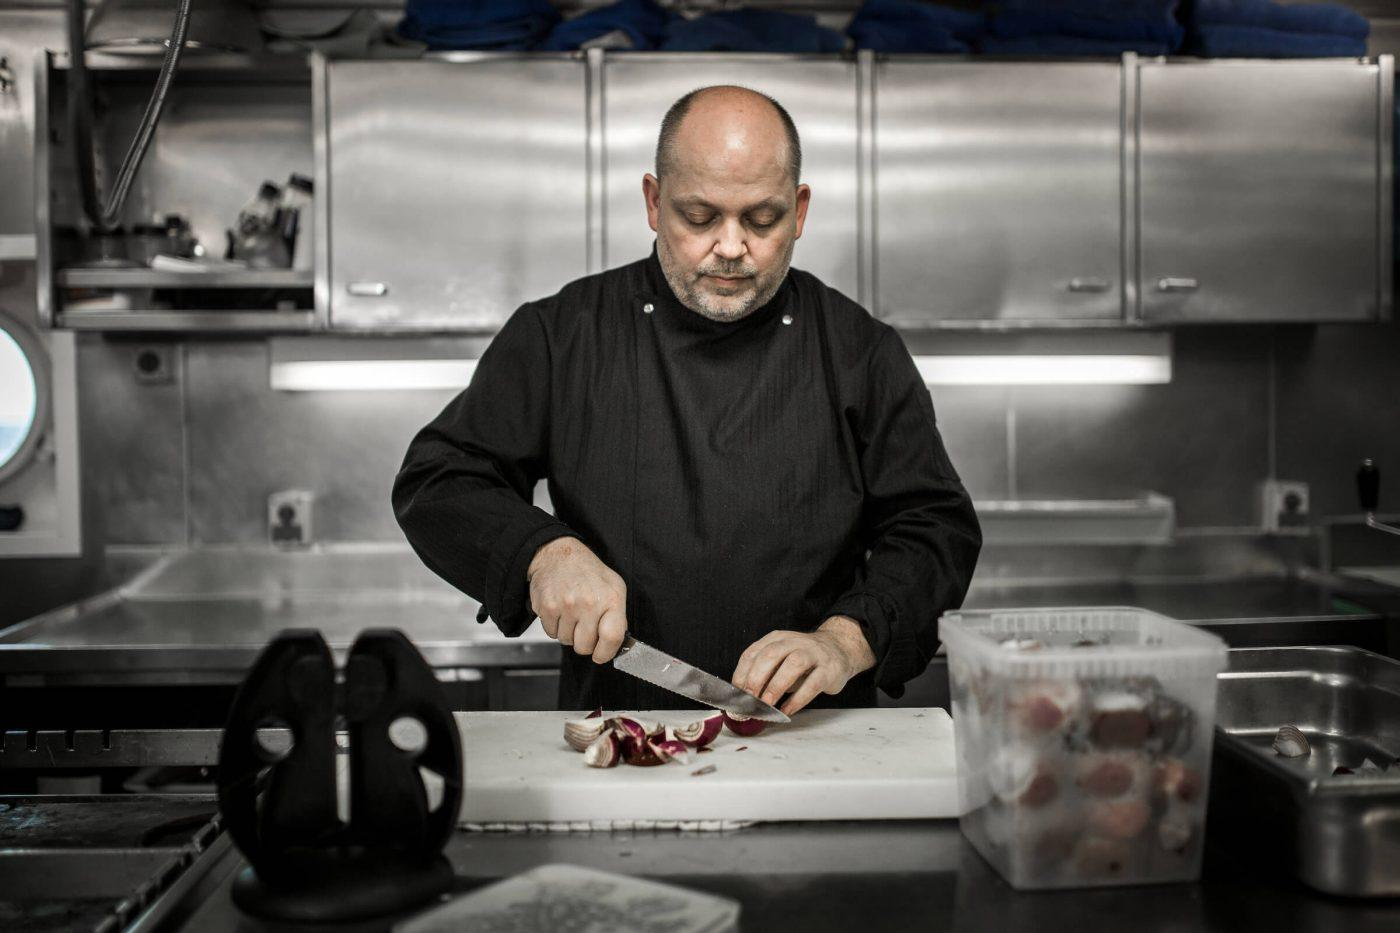 A chef on the passenger ferry Sarfaq Ittuk in Greenland. By Mads Pihl